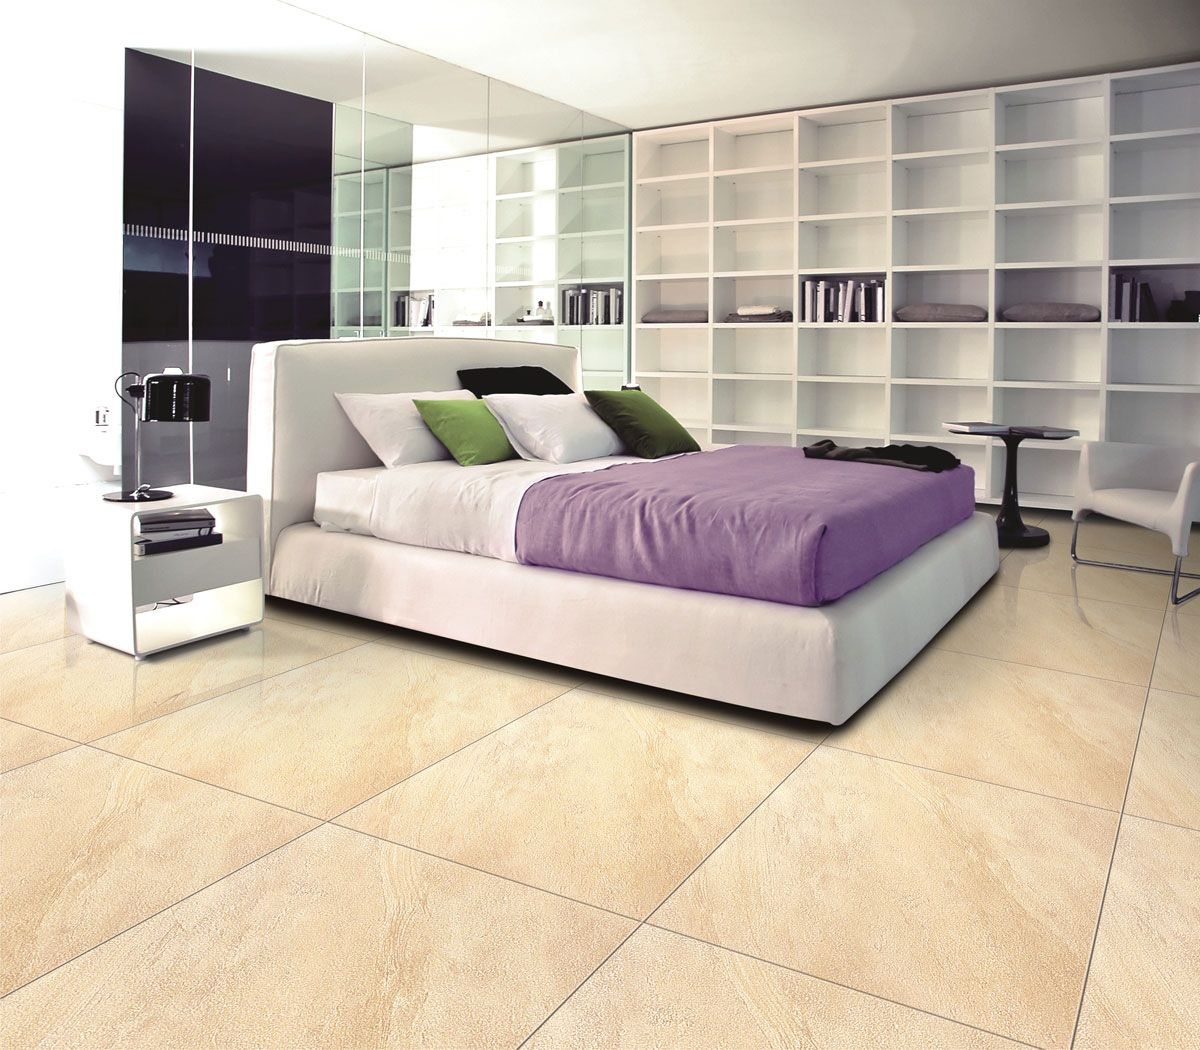 35 Dorable Bedroom Tiles Photos Decortez Tile Bedroom Bedroom Flooring Home Decor